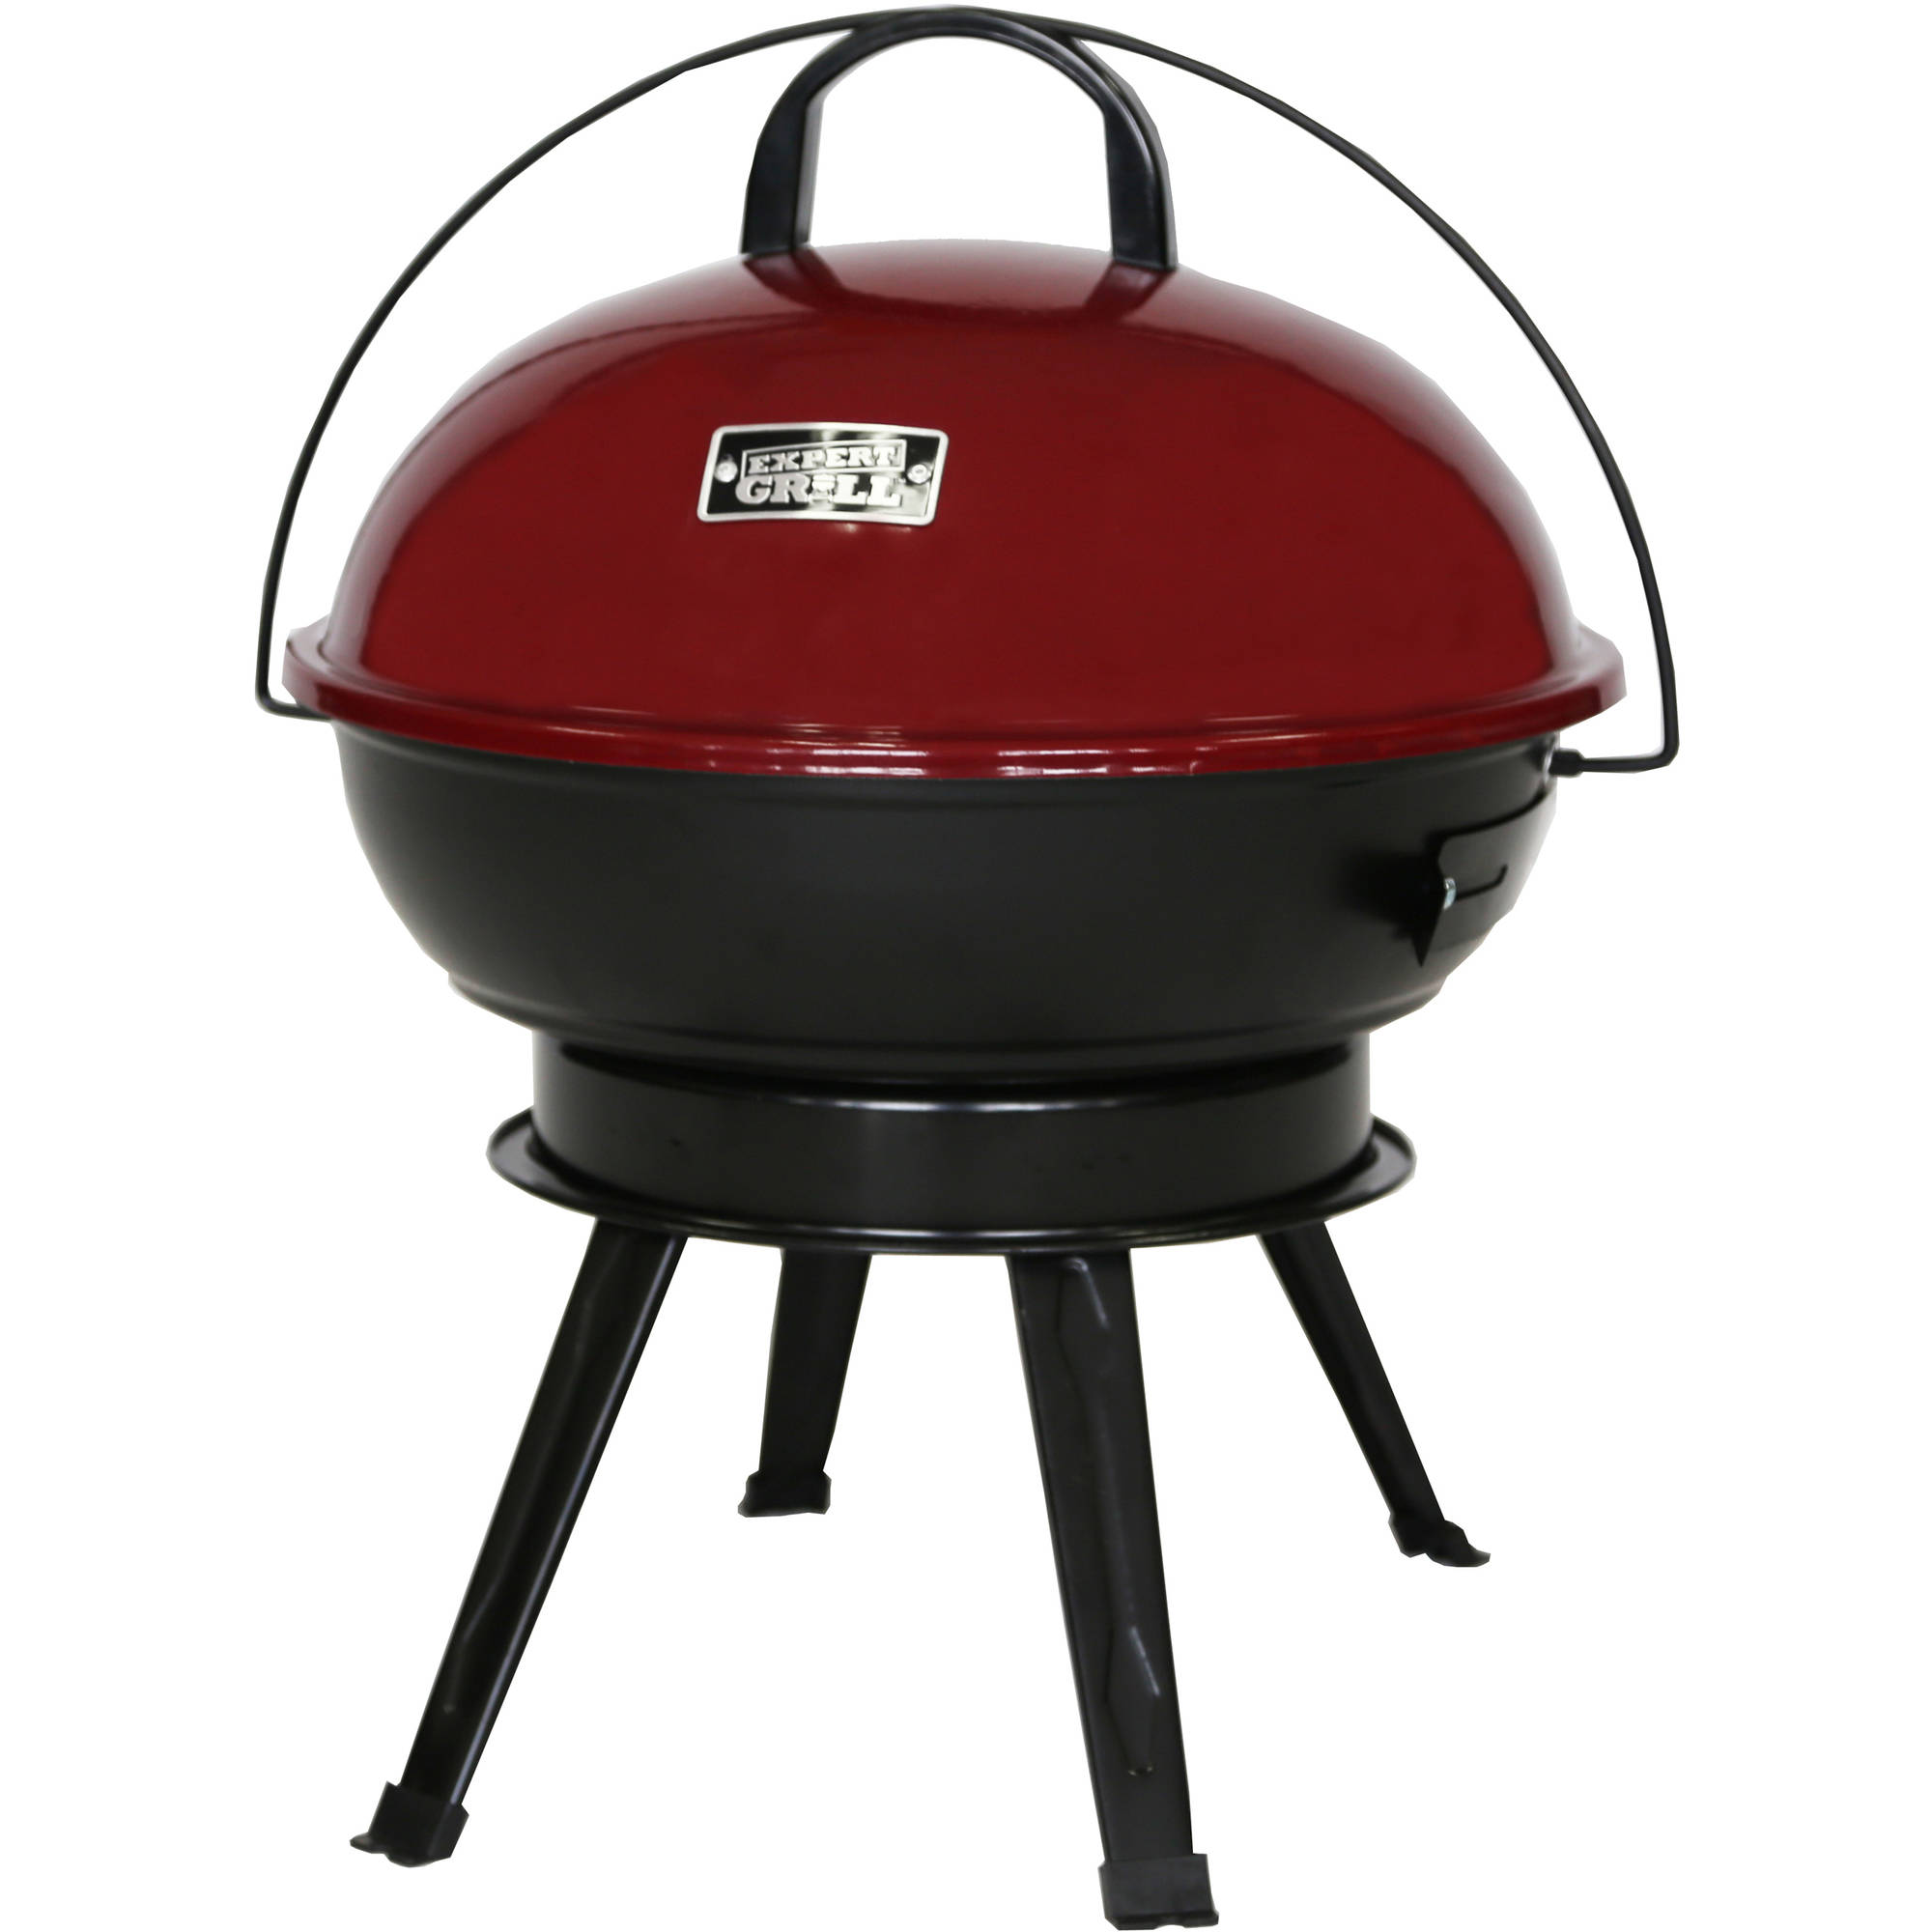 Expert Grill 14.5-Inch Portable Charcoal Grill